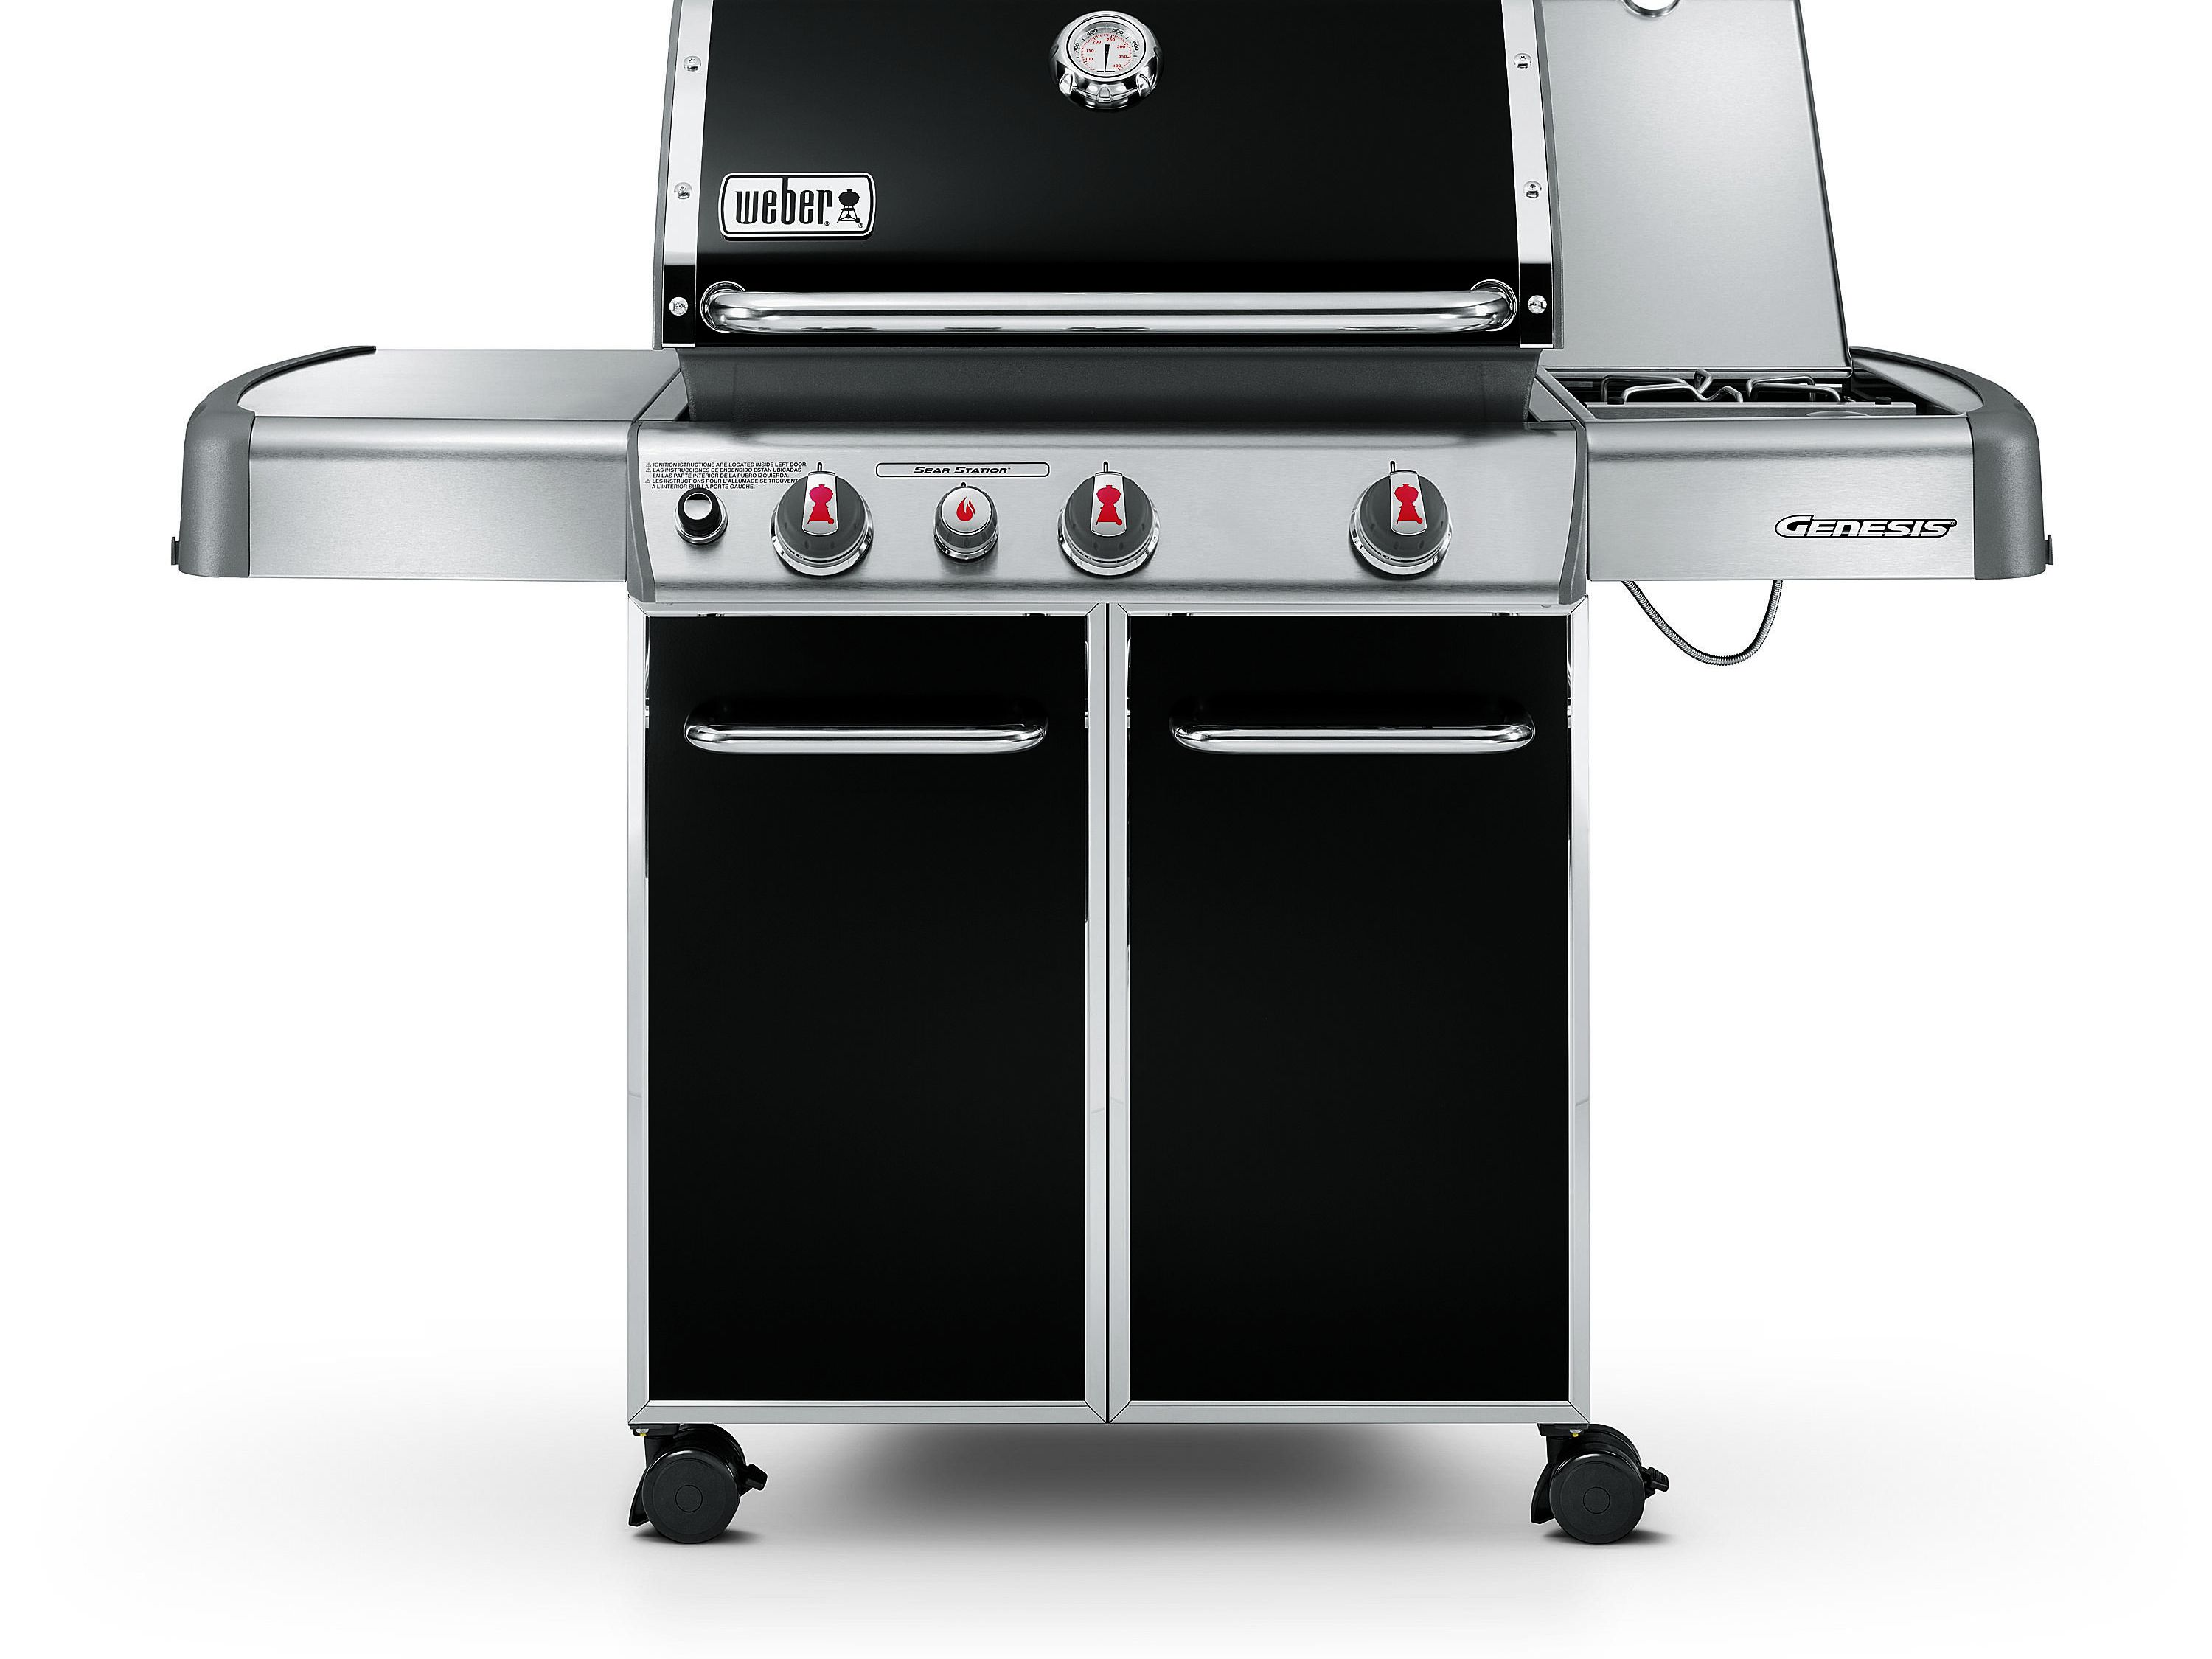 Charmglow Gas Fireplace New Weber Genesis E 330 Gas Grill Review